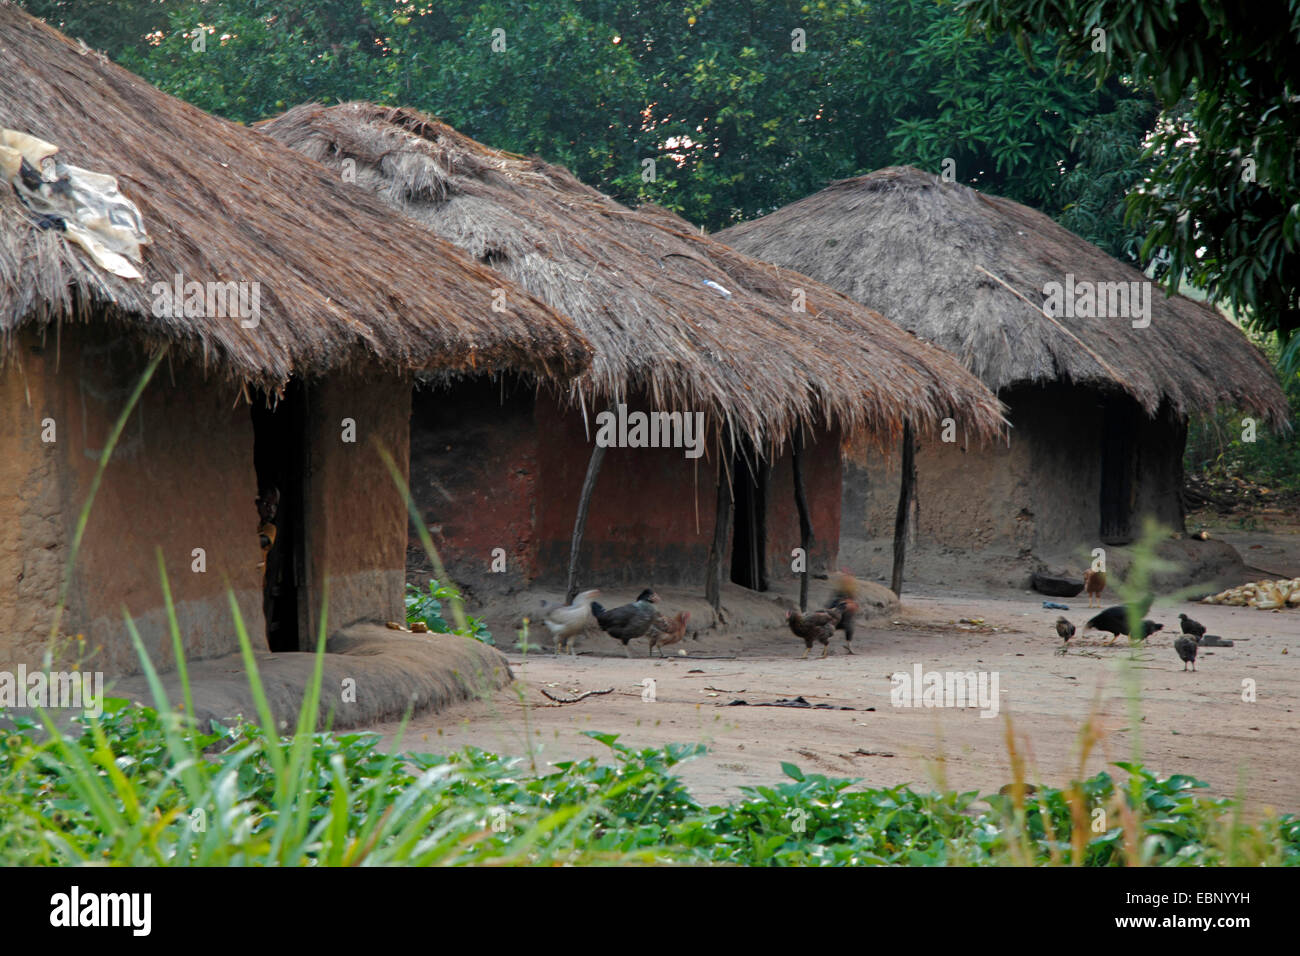 Village africain, l'Ouganda Photo Stock